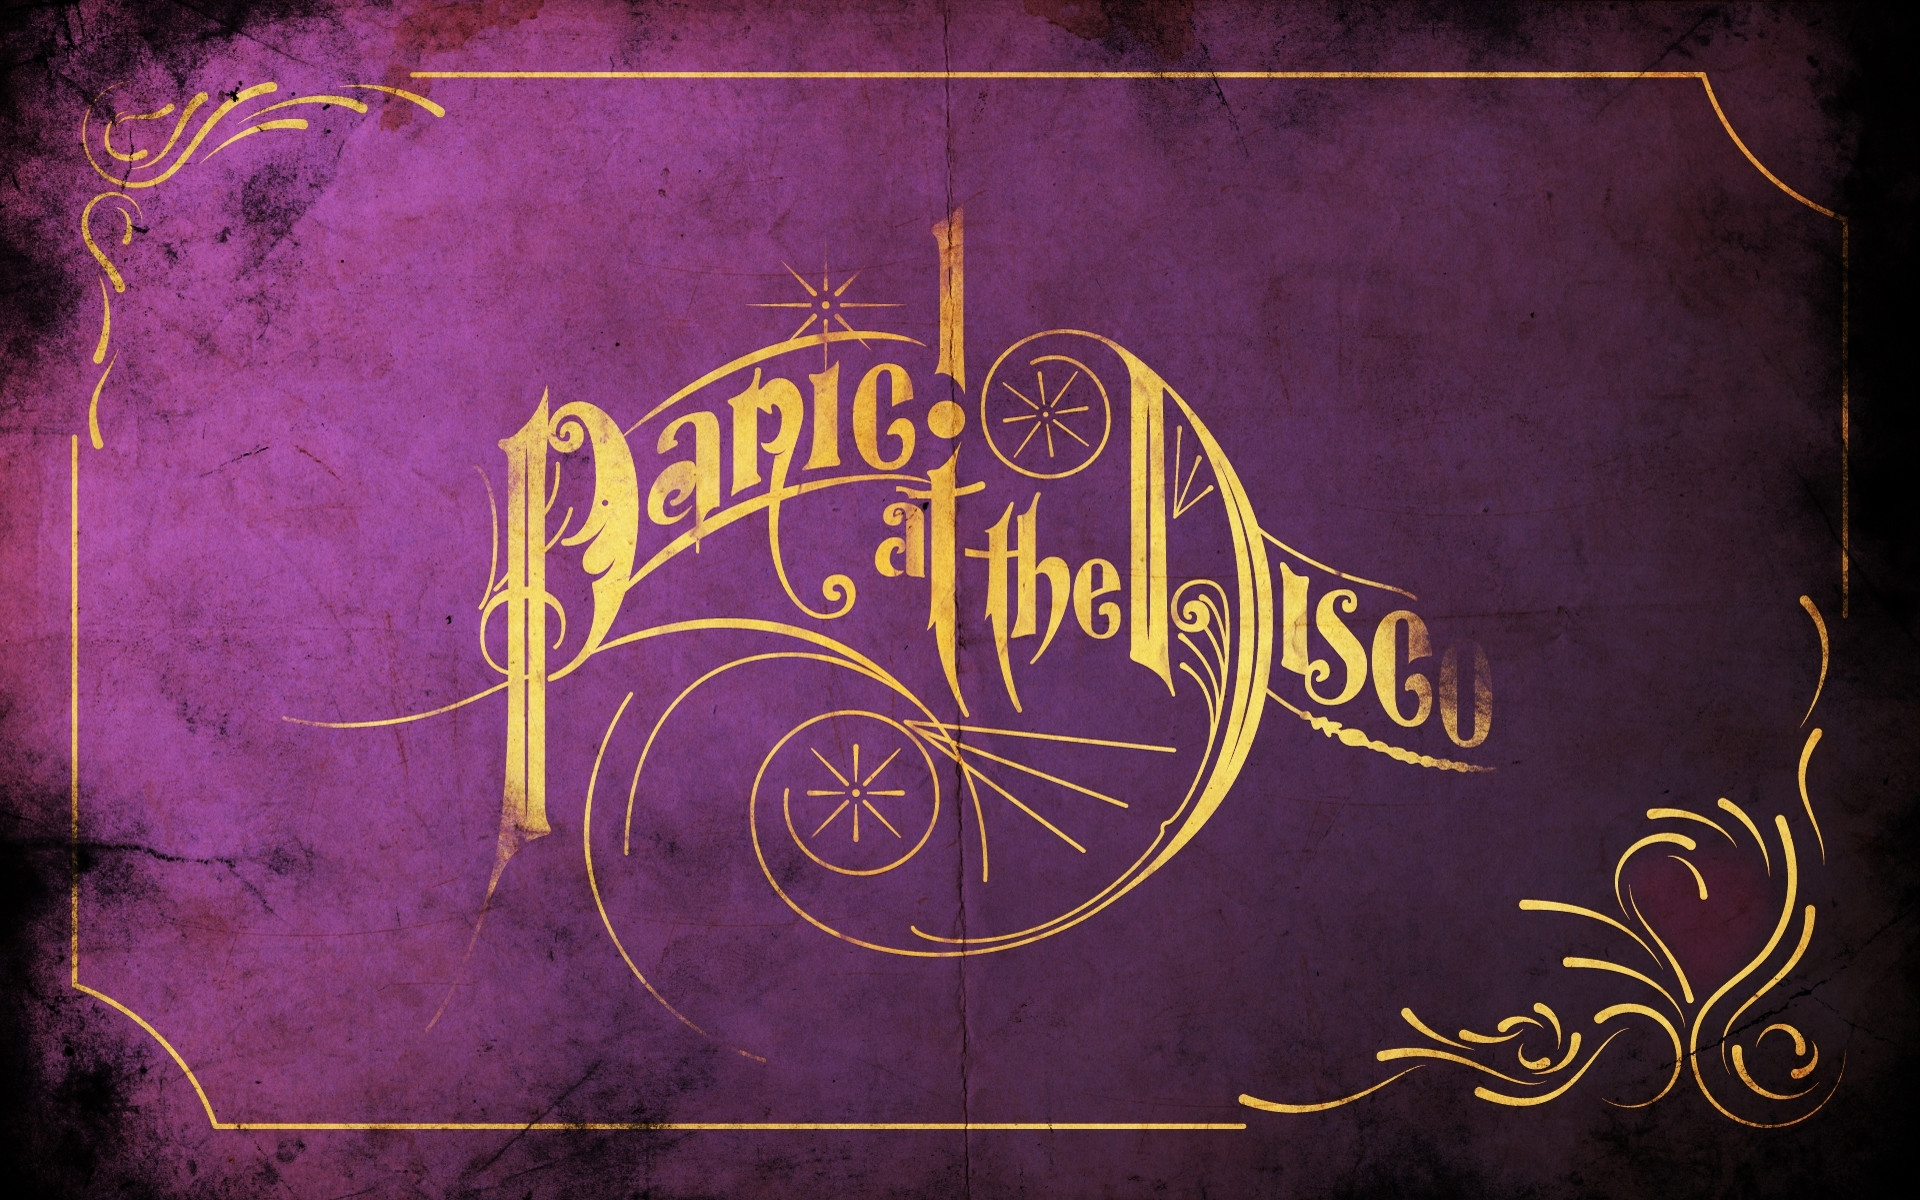 panic at the disco wallpaper (77+ images)